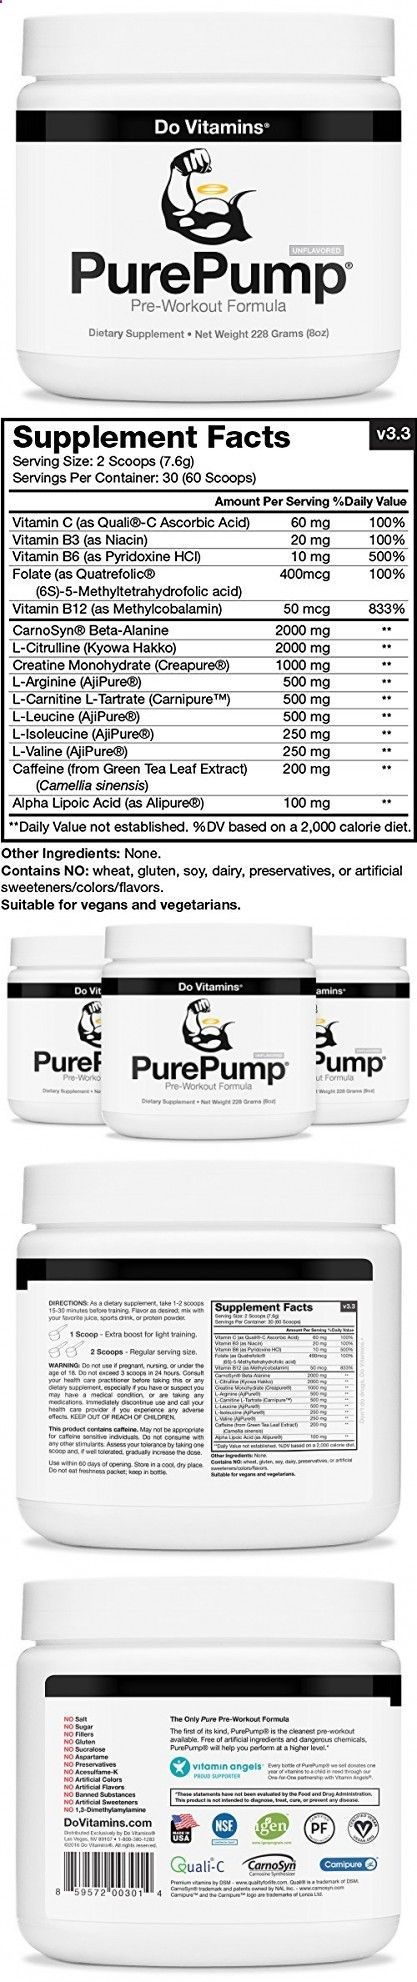 PurePump Natural Pre Workout Supplement for Men  Women, Cleanest Pre-Workout Powder Fitness Supplements Certified Paleo, Vegan, Non-GMO - No Artificial Sweeteners Colors or Flavors, 228 Grams (8 oz)